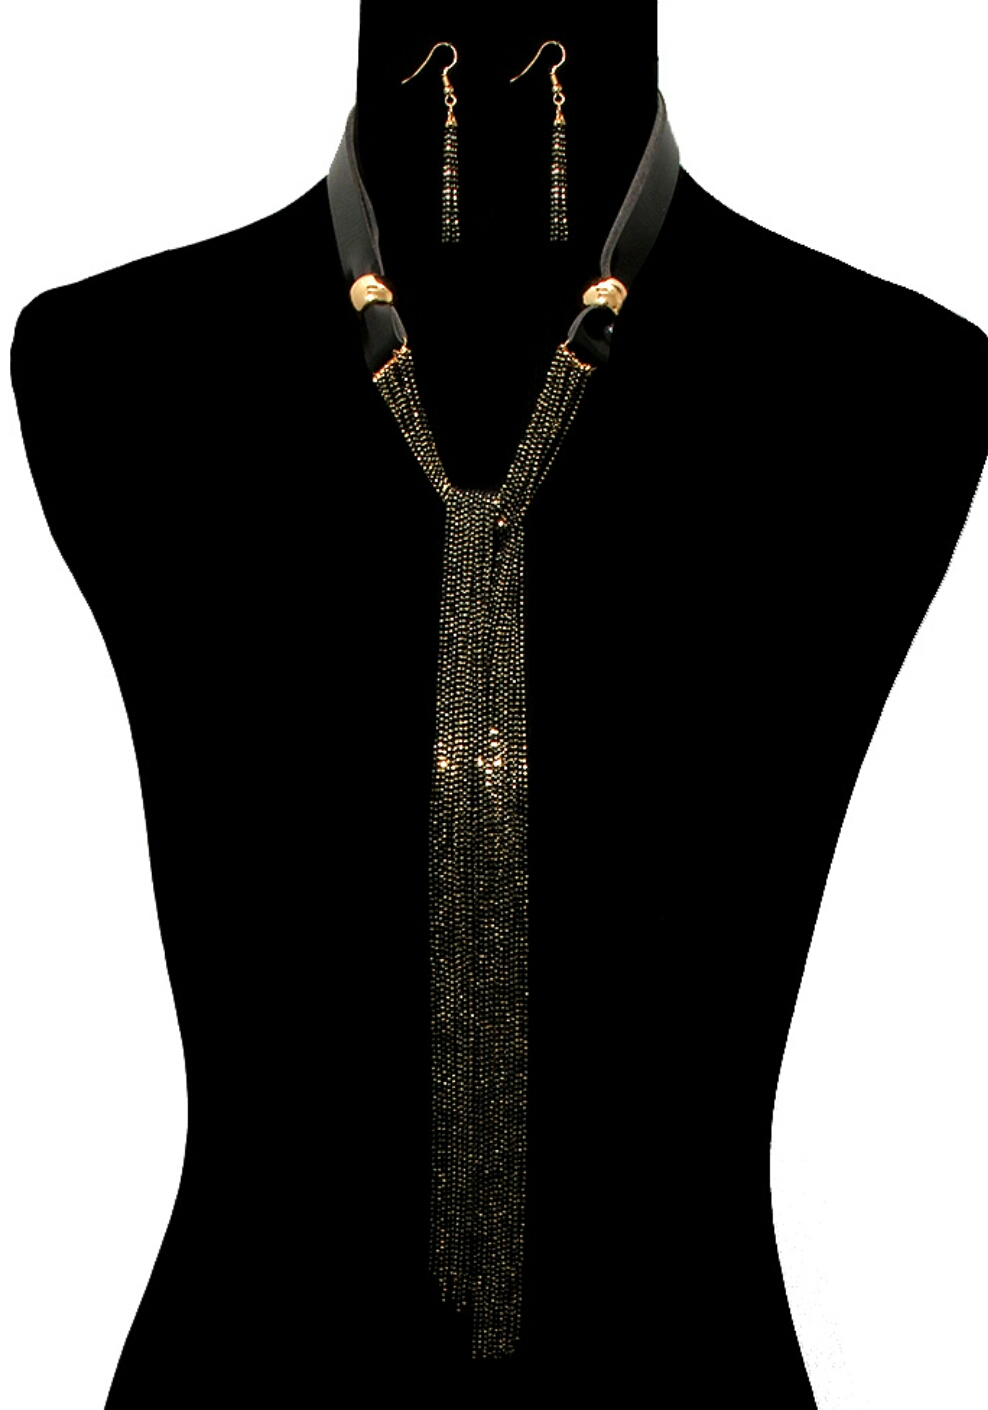 New Arrival  Black faux leather toggle closure necklace set with mint beads chain layers